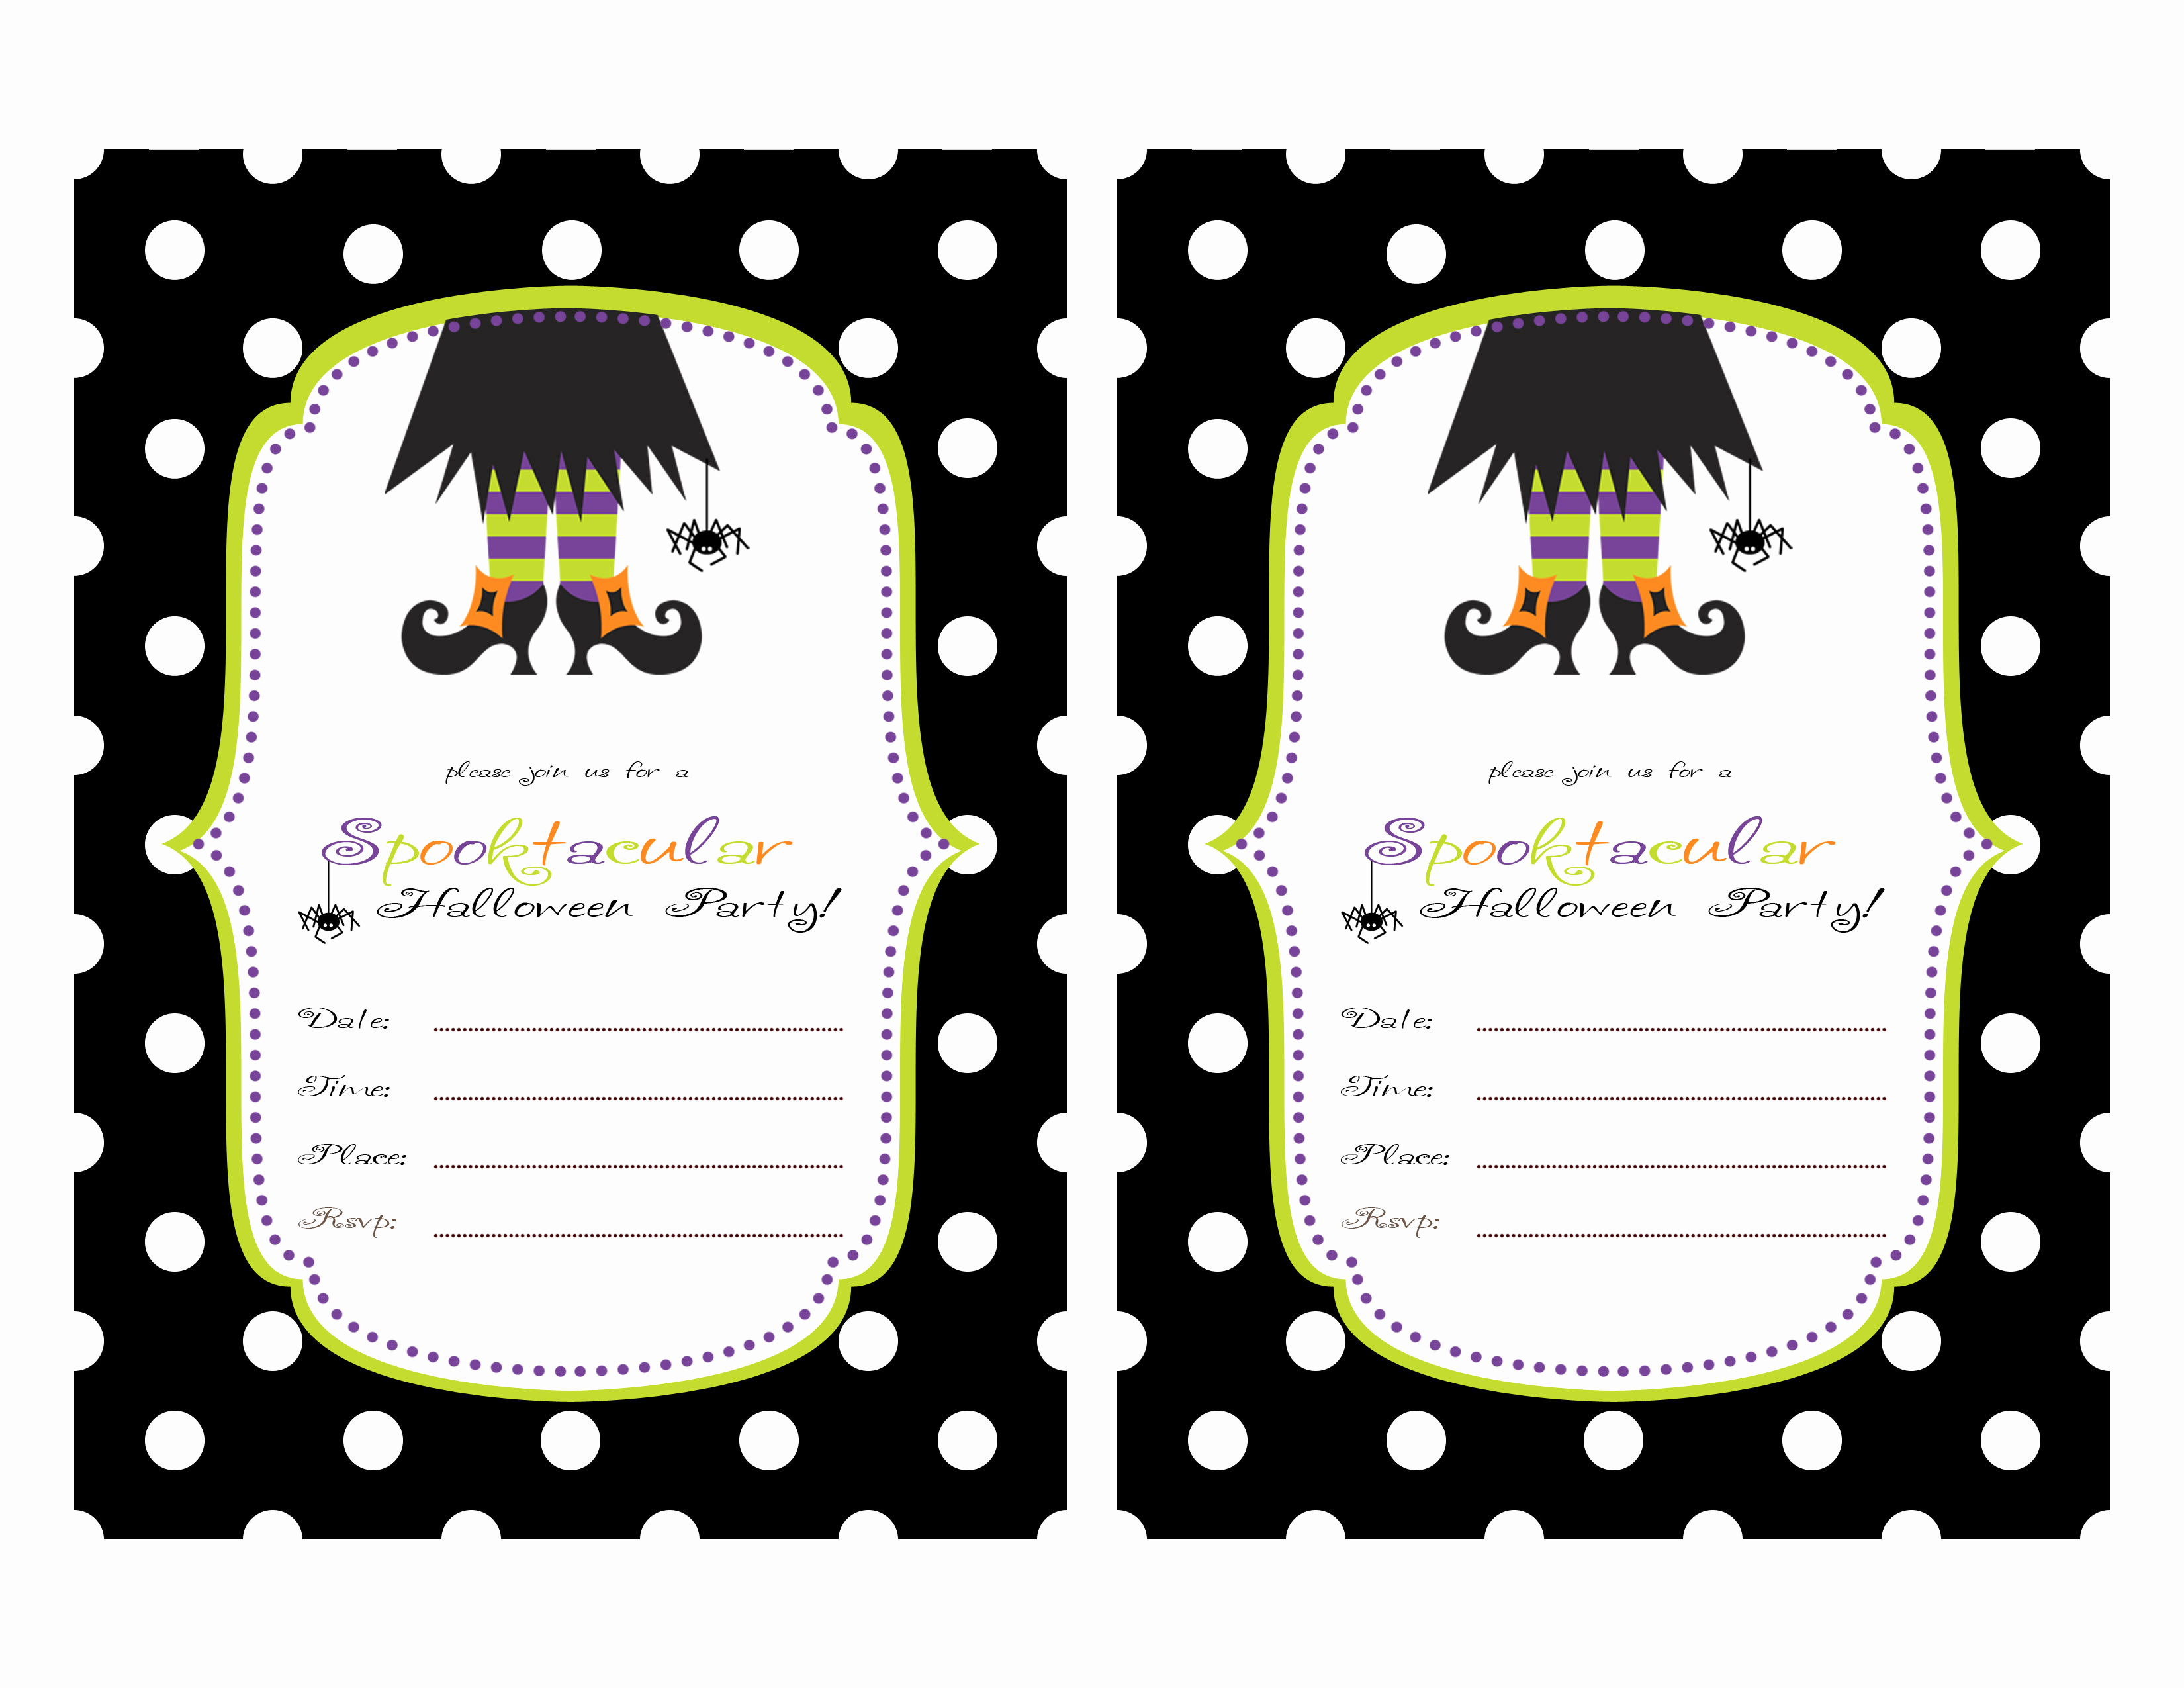 Halloween Party Invitation Template Awesome Restlessrisa Halloween Party Invitations